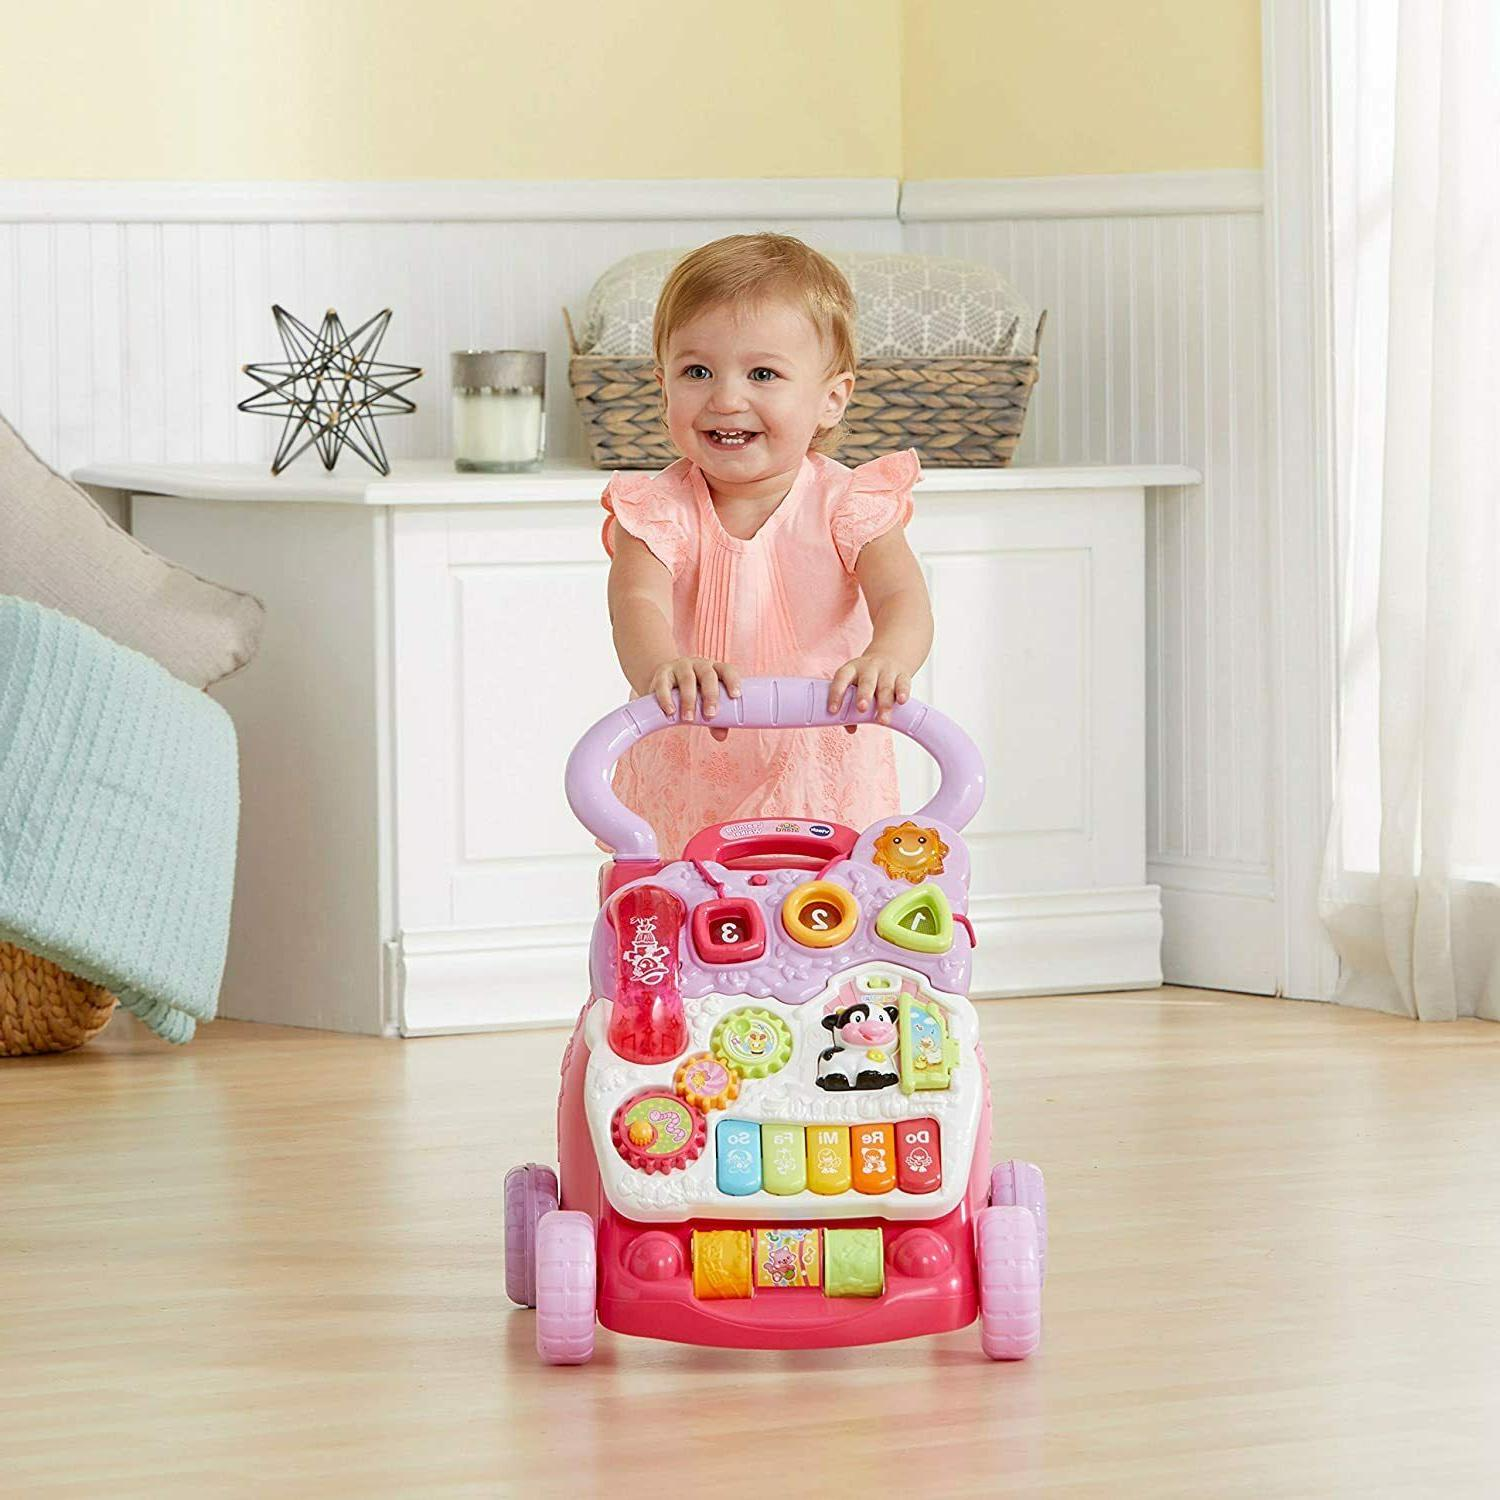 VTech Walker Toddler Learning Sit-to-Stand Pink